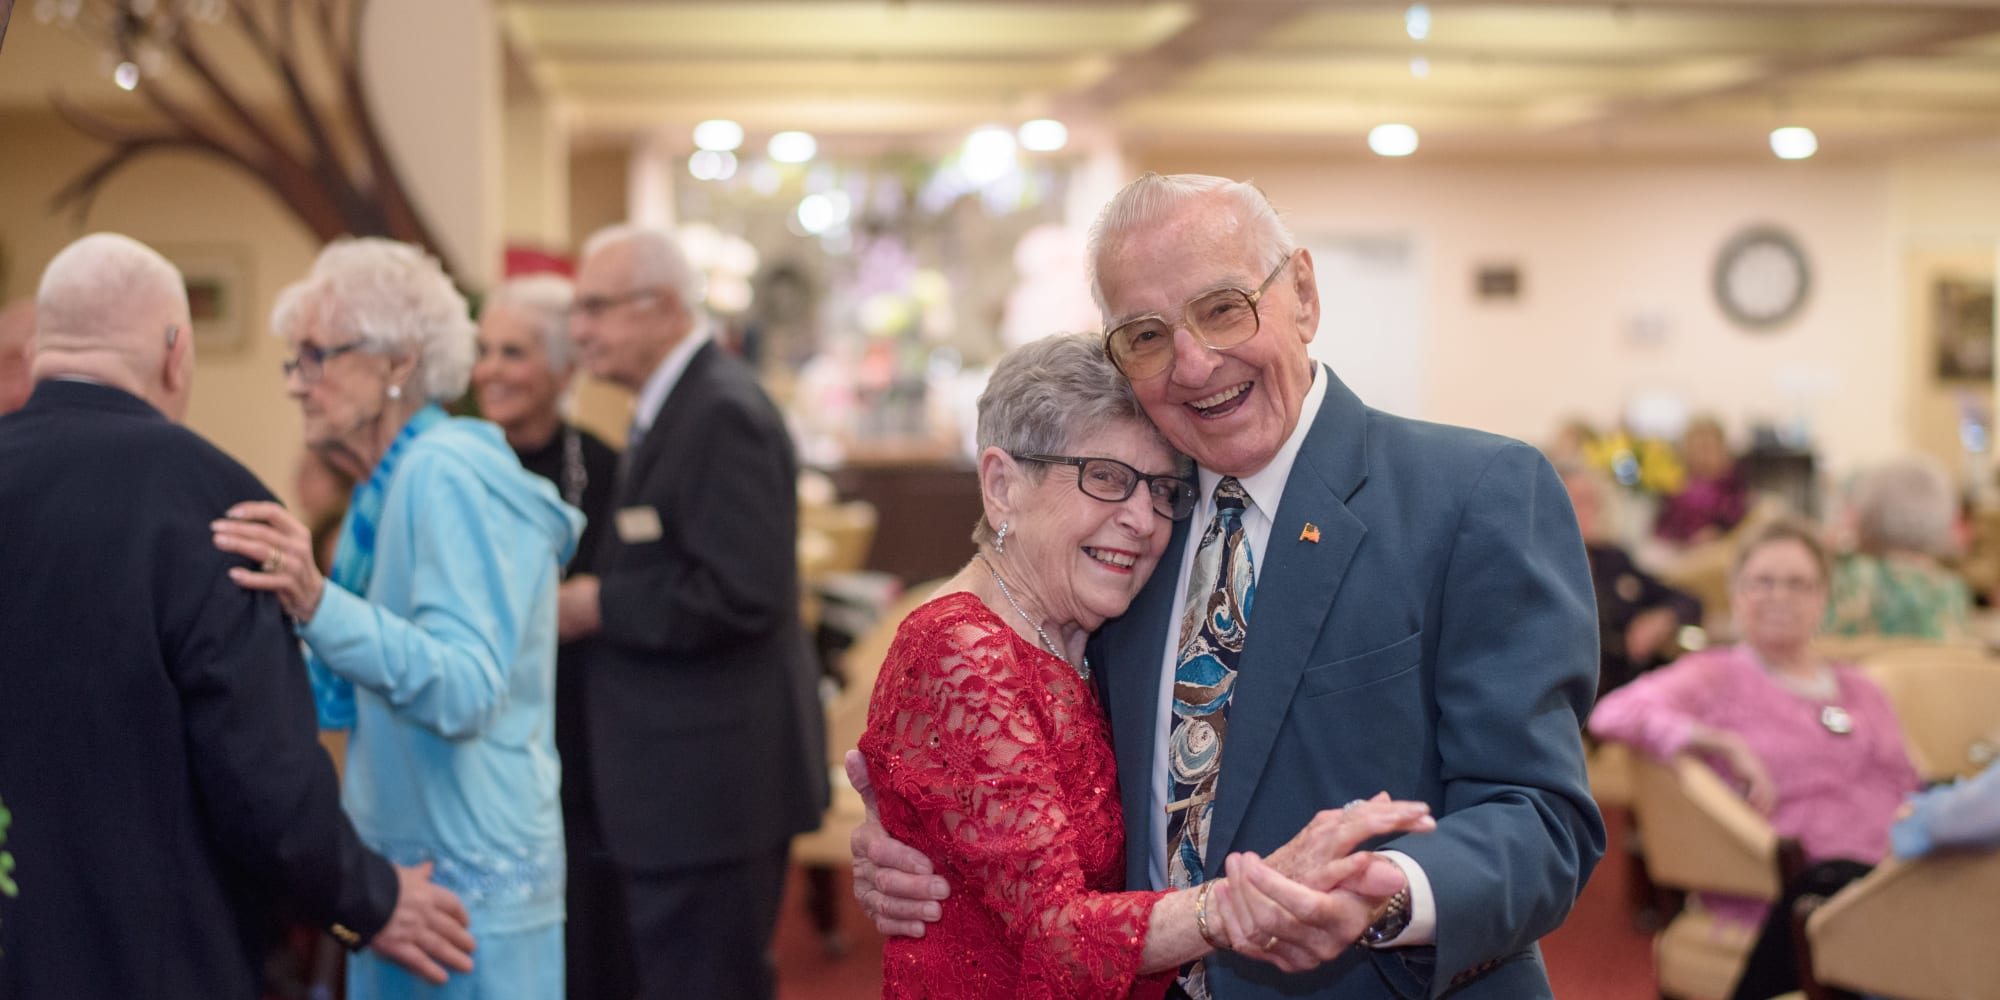 A happy couple dancing together at Kennedy Meadows Gracious Retirement Living in North Billerica, Massachusetts